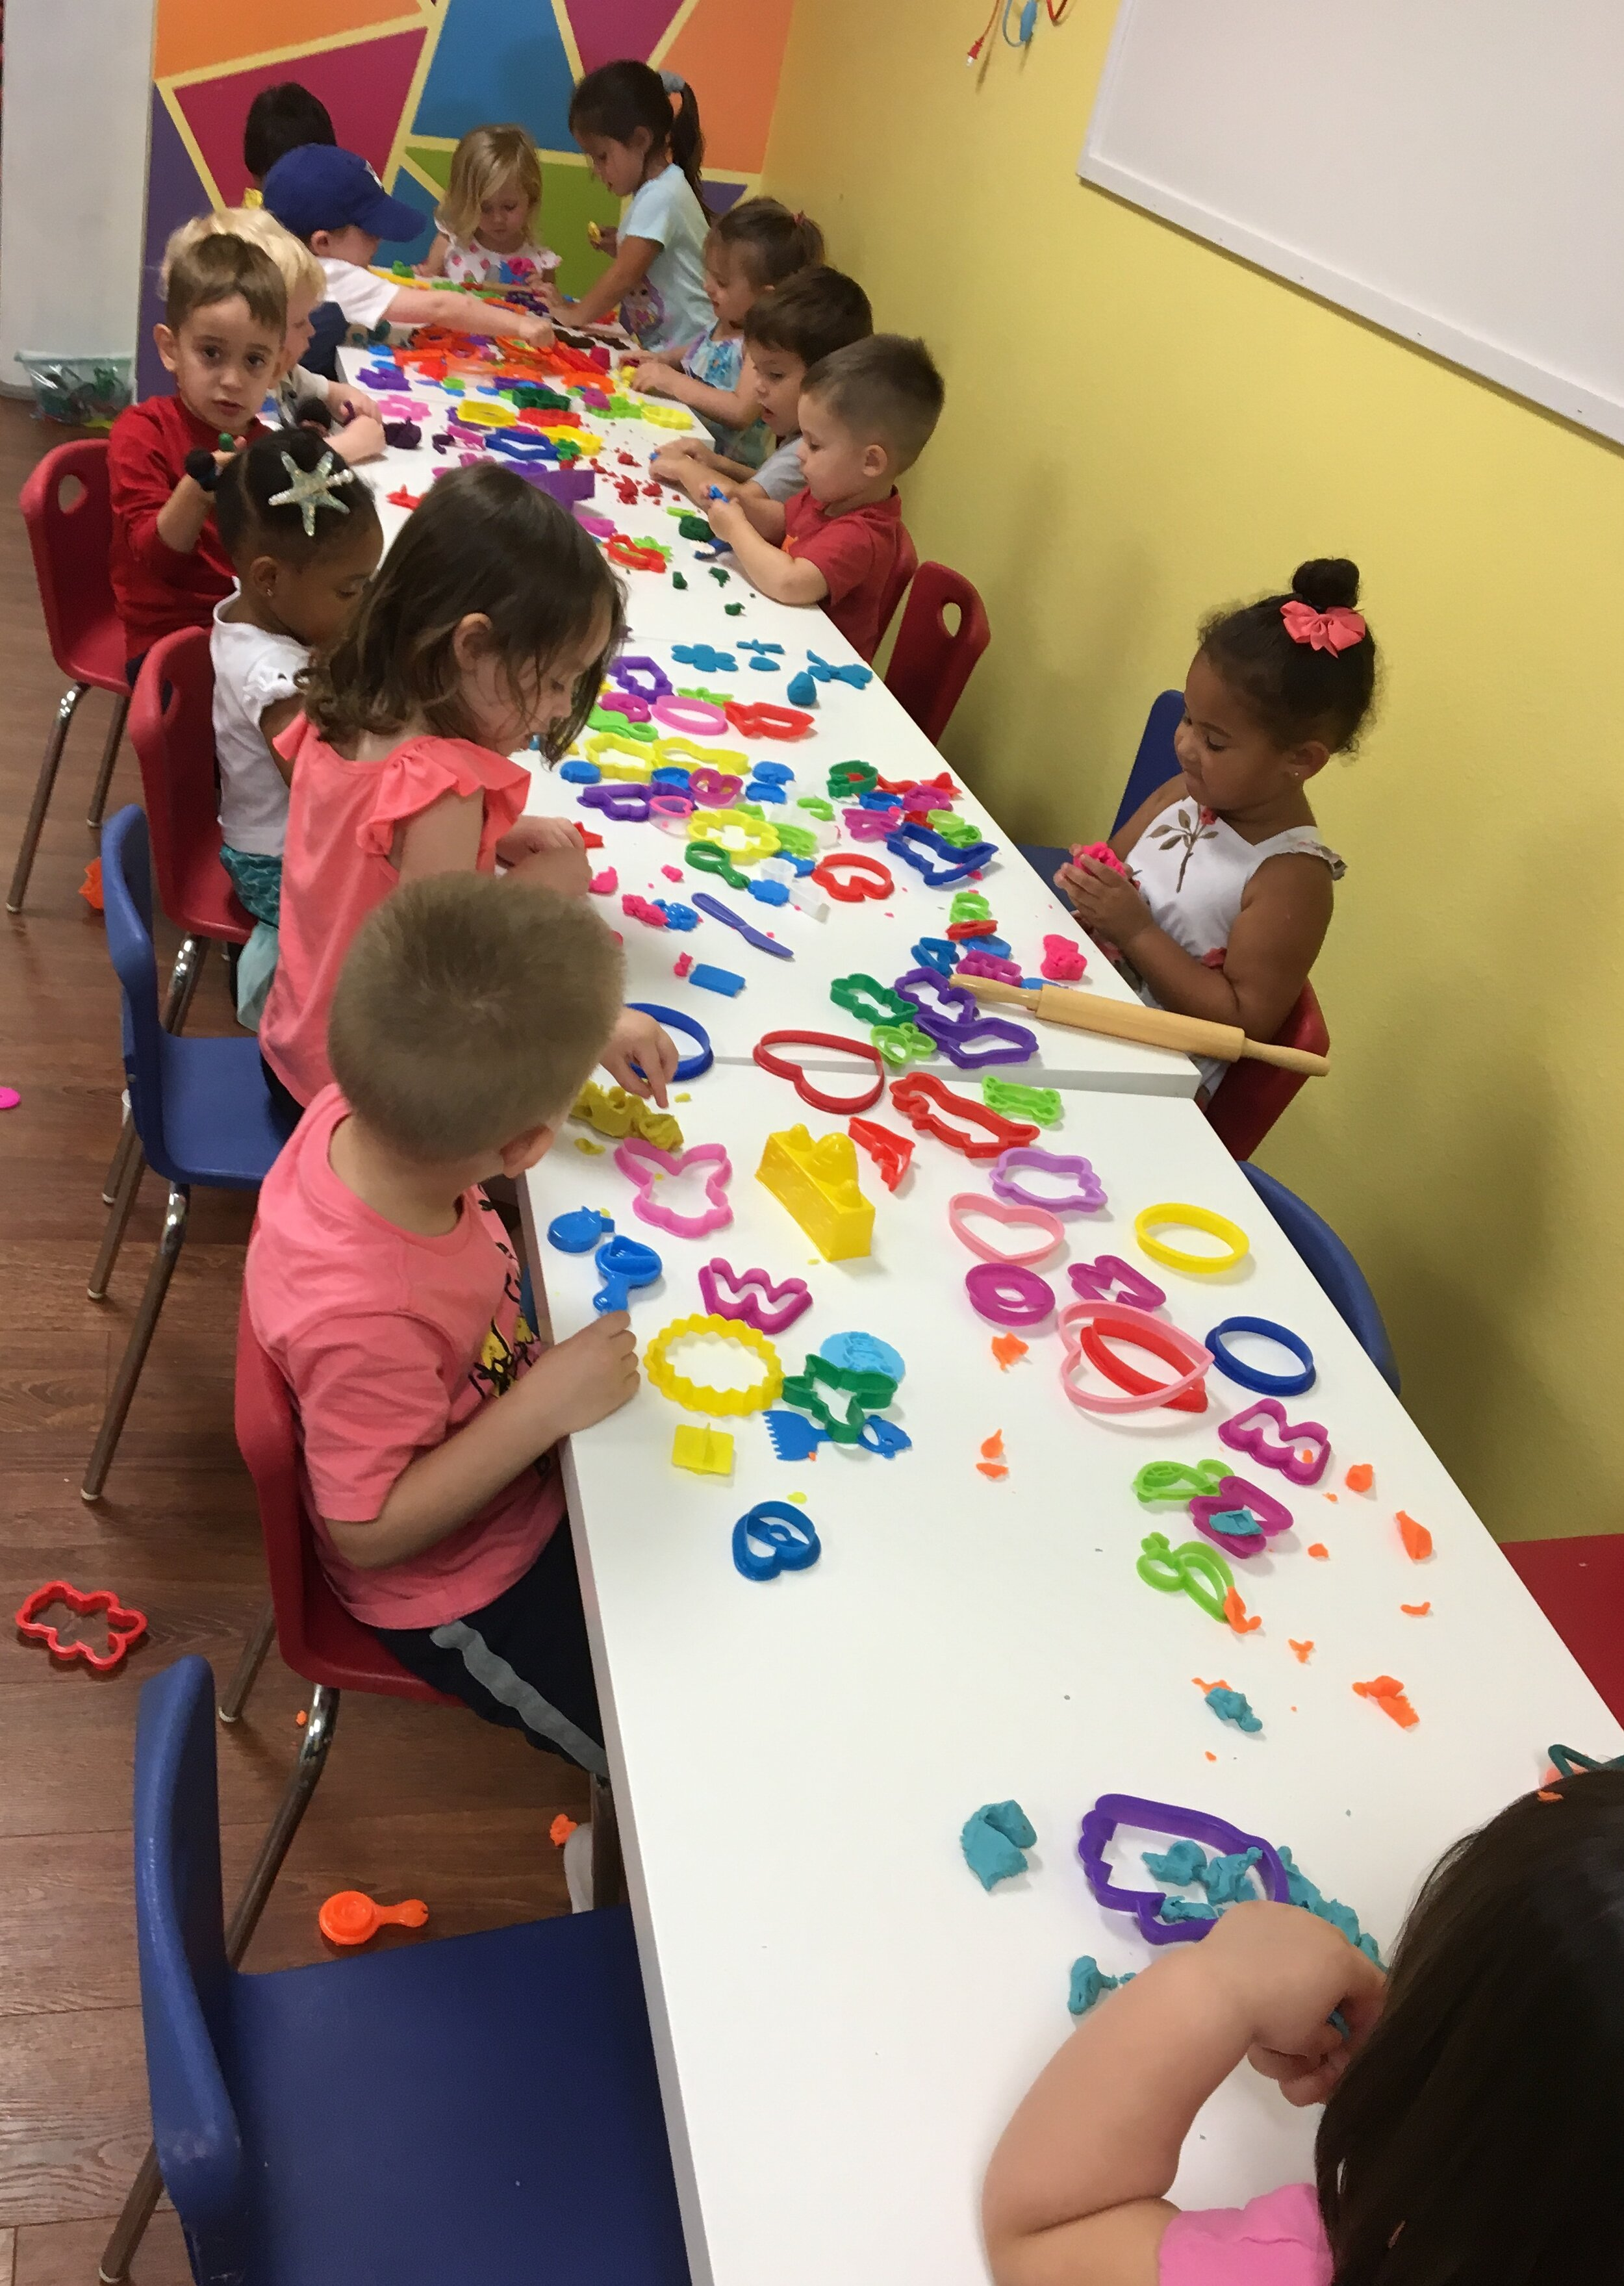 Lil' Explorers - Lil' Explorers is a drop off class, for ages 2-4, that requires a weekly commitment. This class will introduce preschoolers to basic preschool skills, socialization & structured activities. Free Open Play access included with enrollment. Please call for availability. This class meets on Wednesday's from 9:45-11:30. The cost is $15 per week, paid monthly.